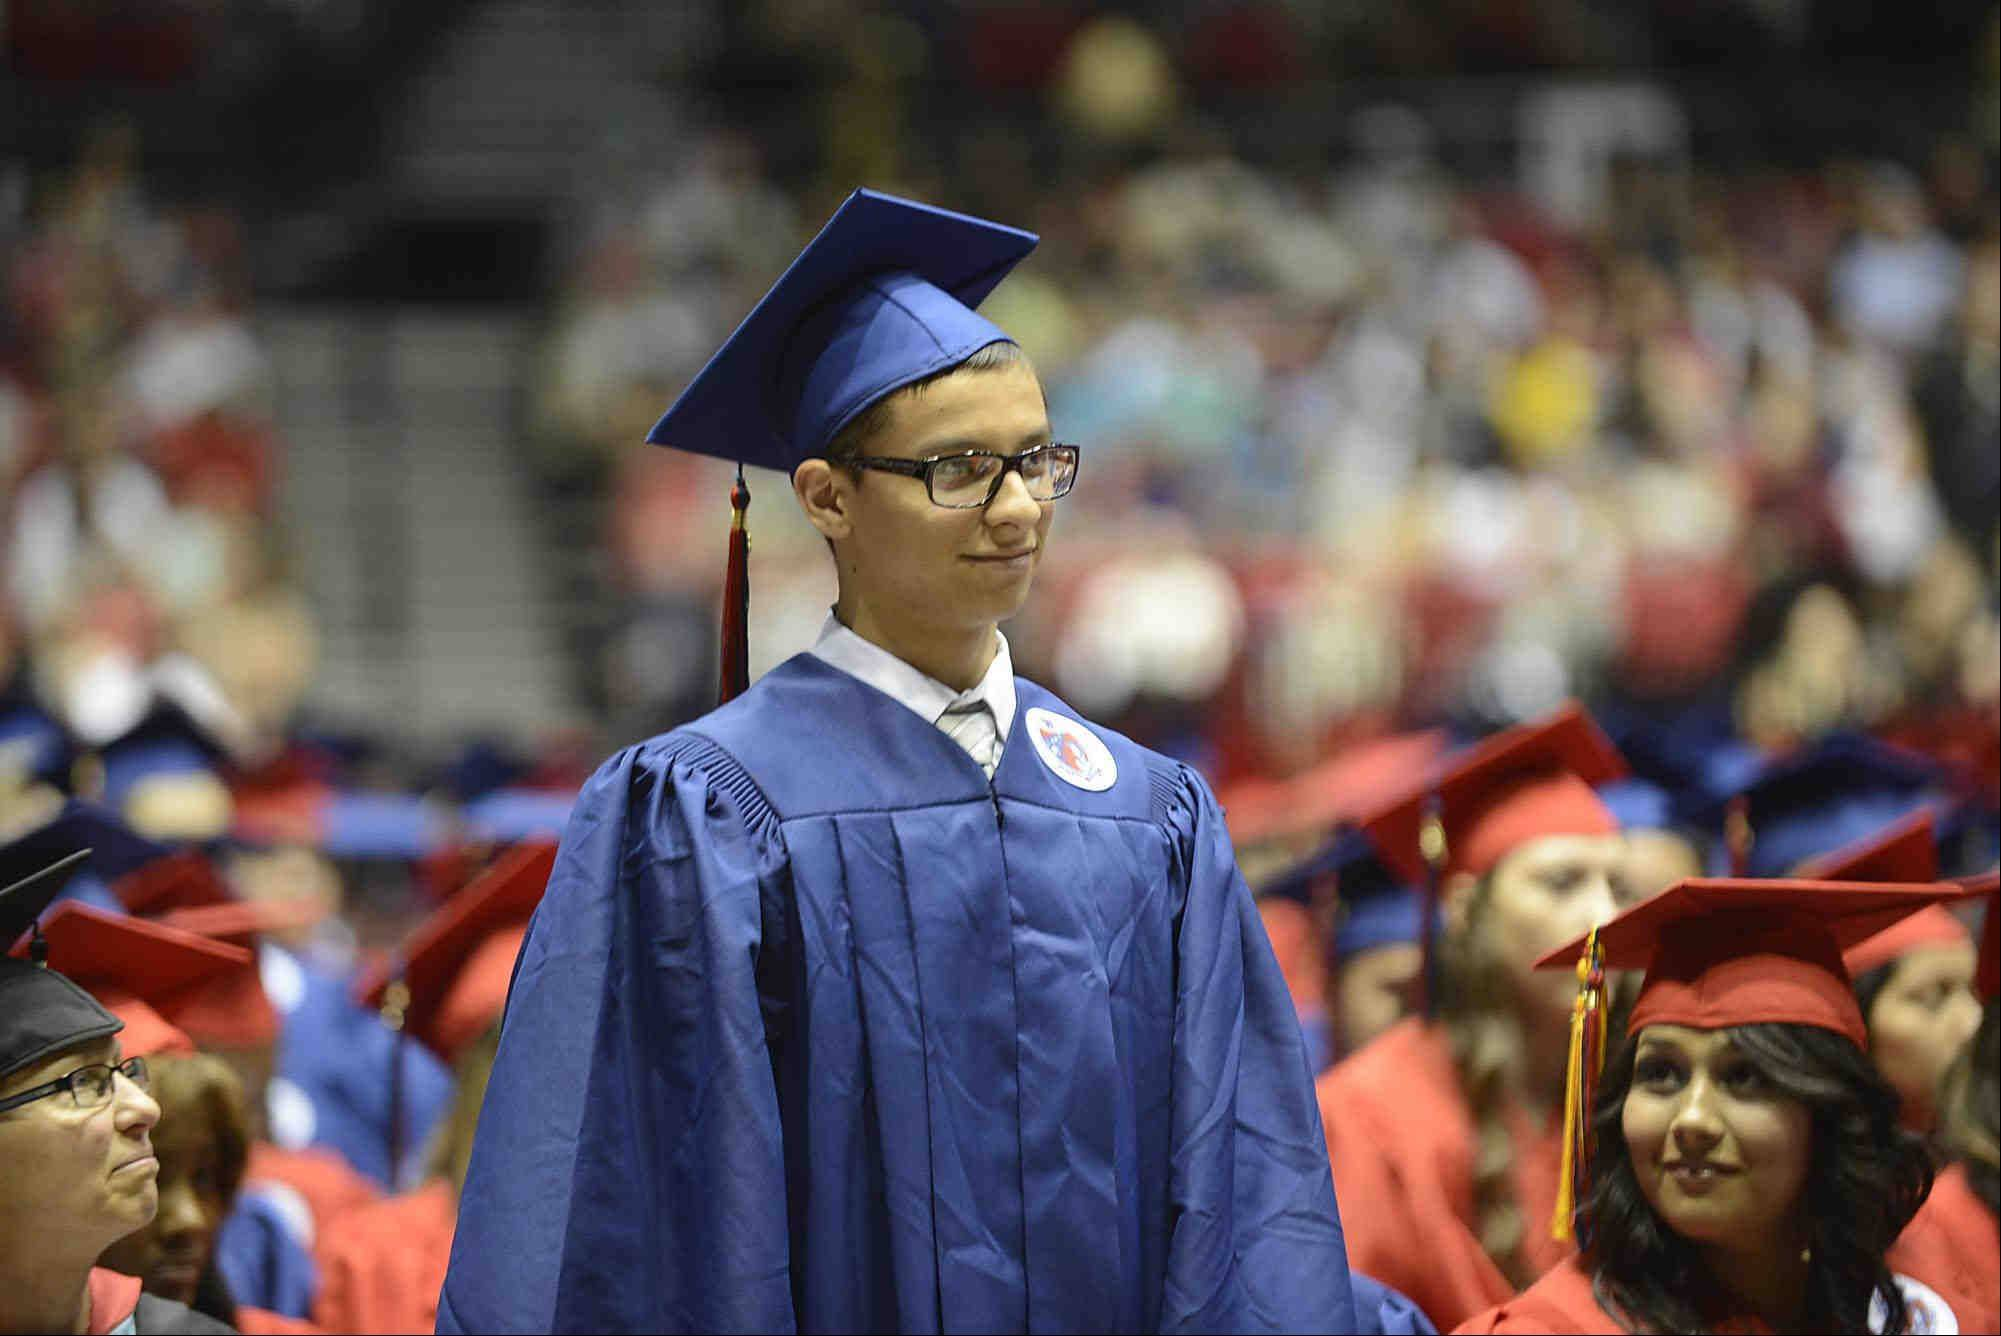 Graduate Robert Isaiah Acosta stands as he is introduced during the West Aurora High School Class of 2013 commencement at Northern Illinois University in Dekalb. He is joining the US armed forces.